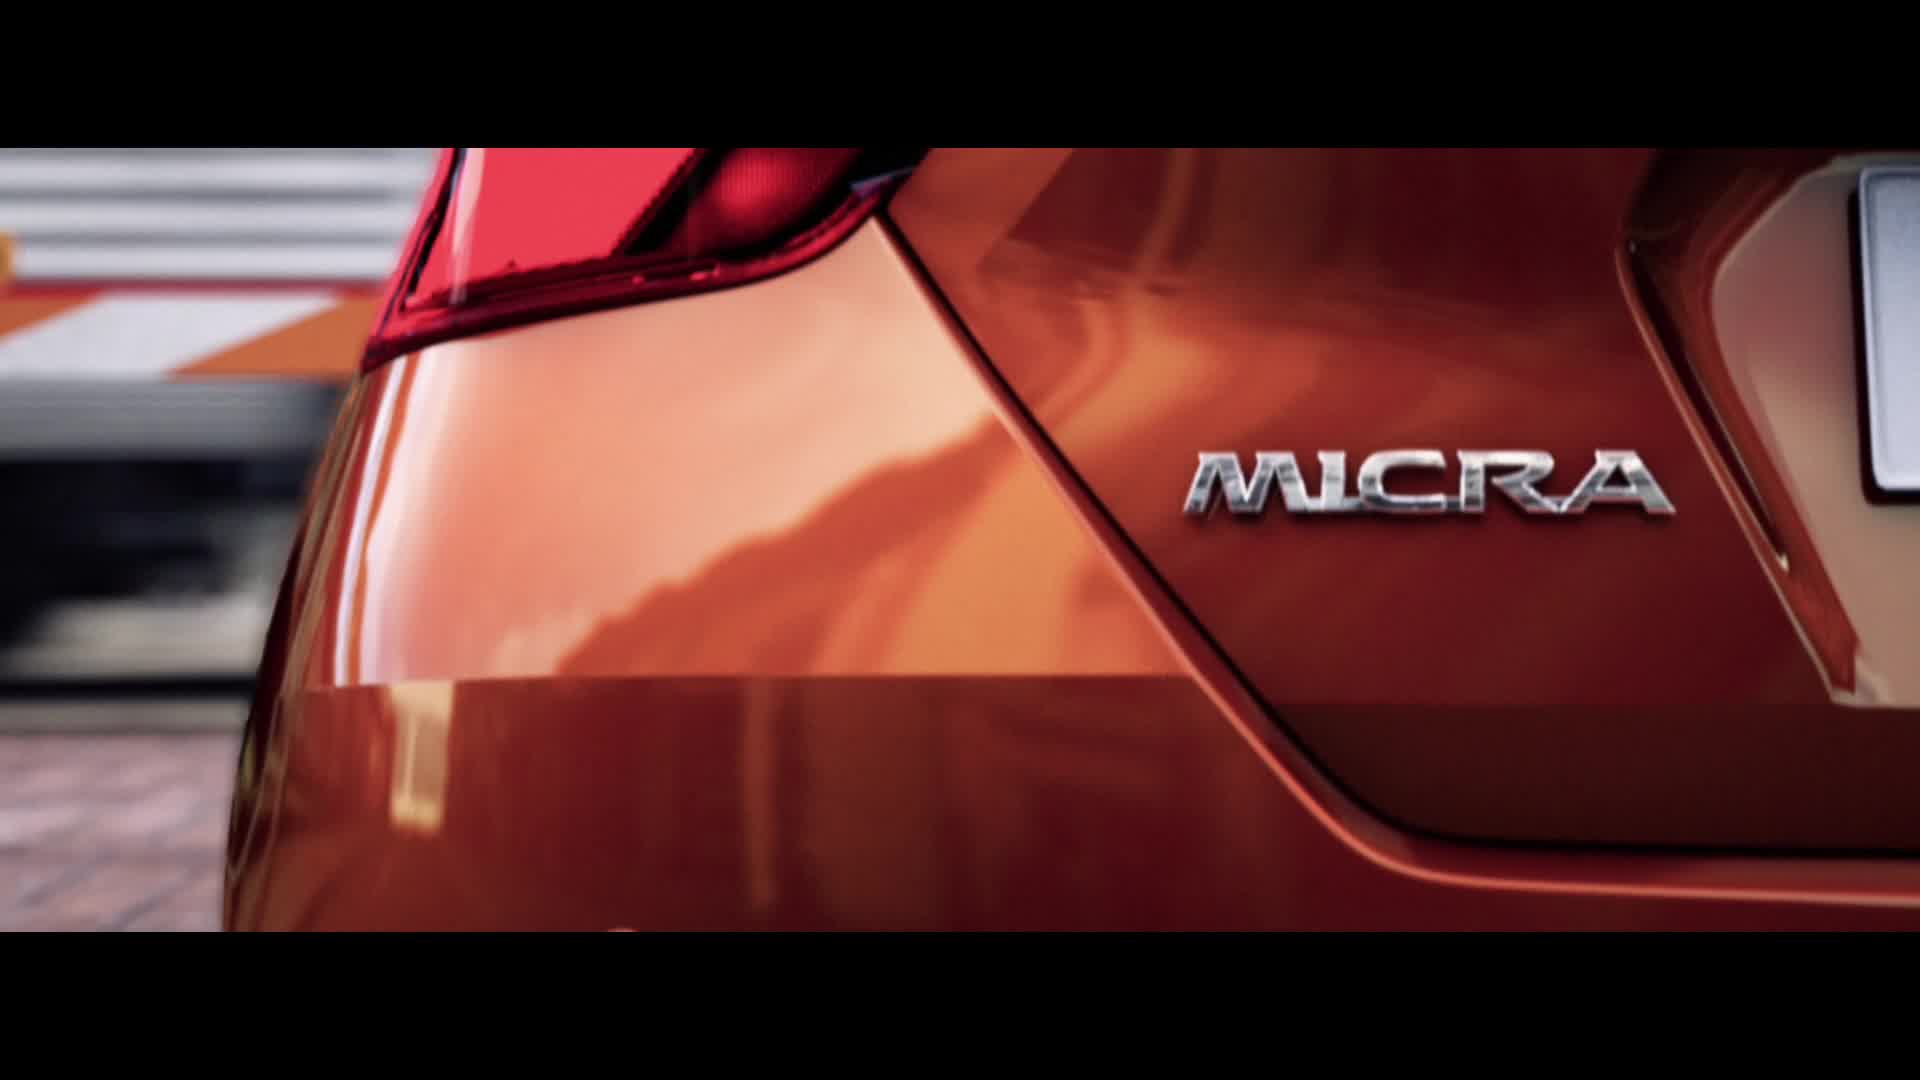 All New Nissan Micra - Play it your way